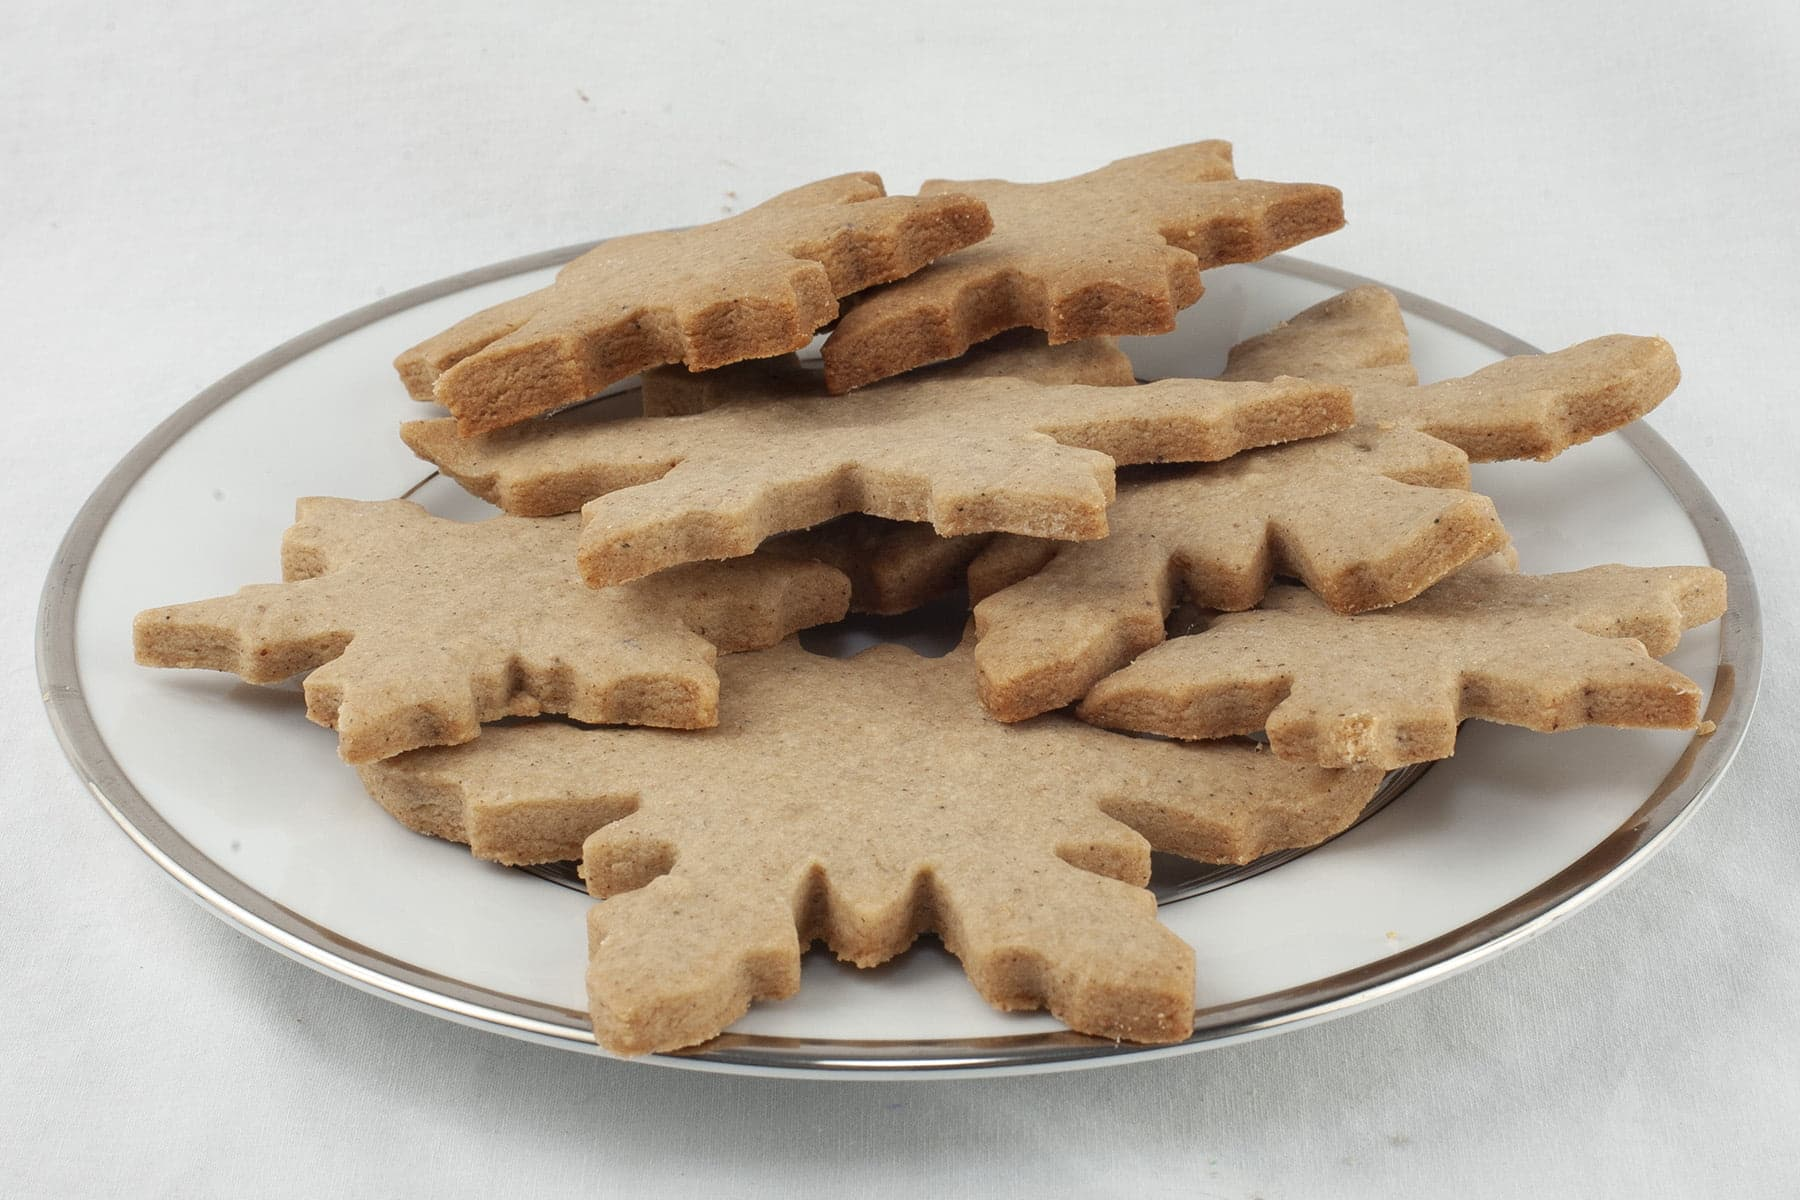 A pile of golden brown shortbread cookies - shaped like snowflakes - are piled on a small white plate.